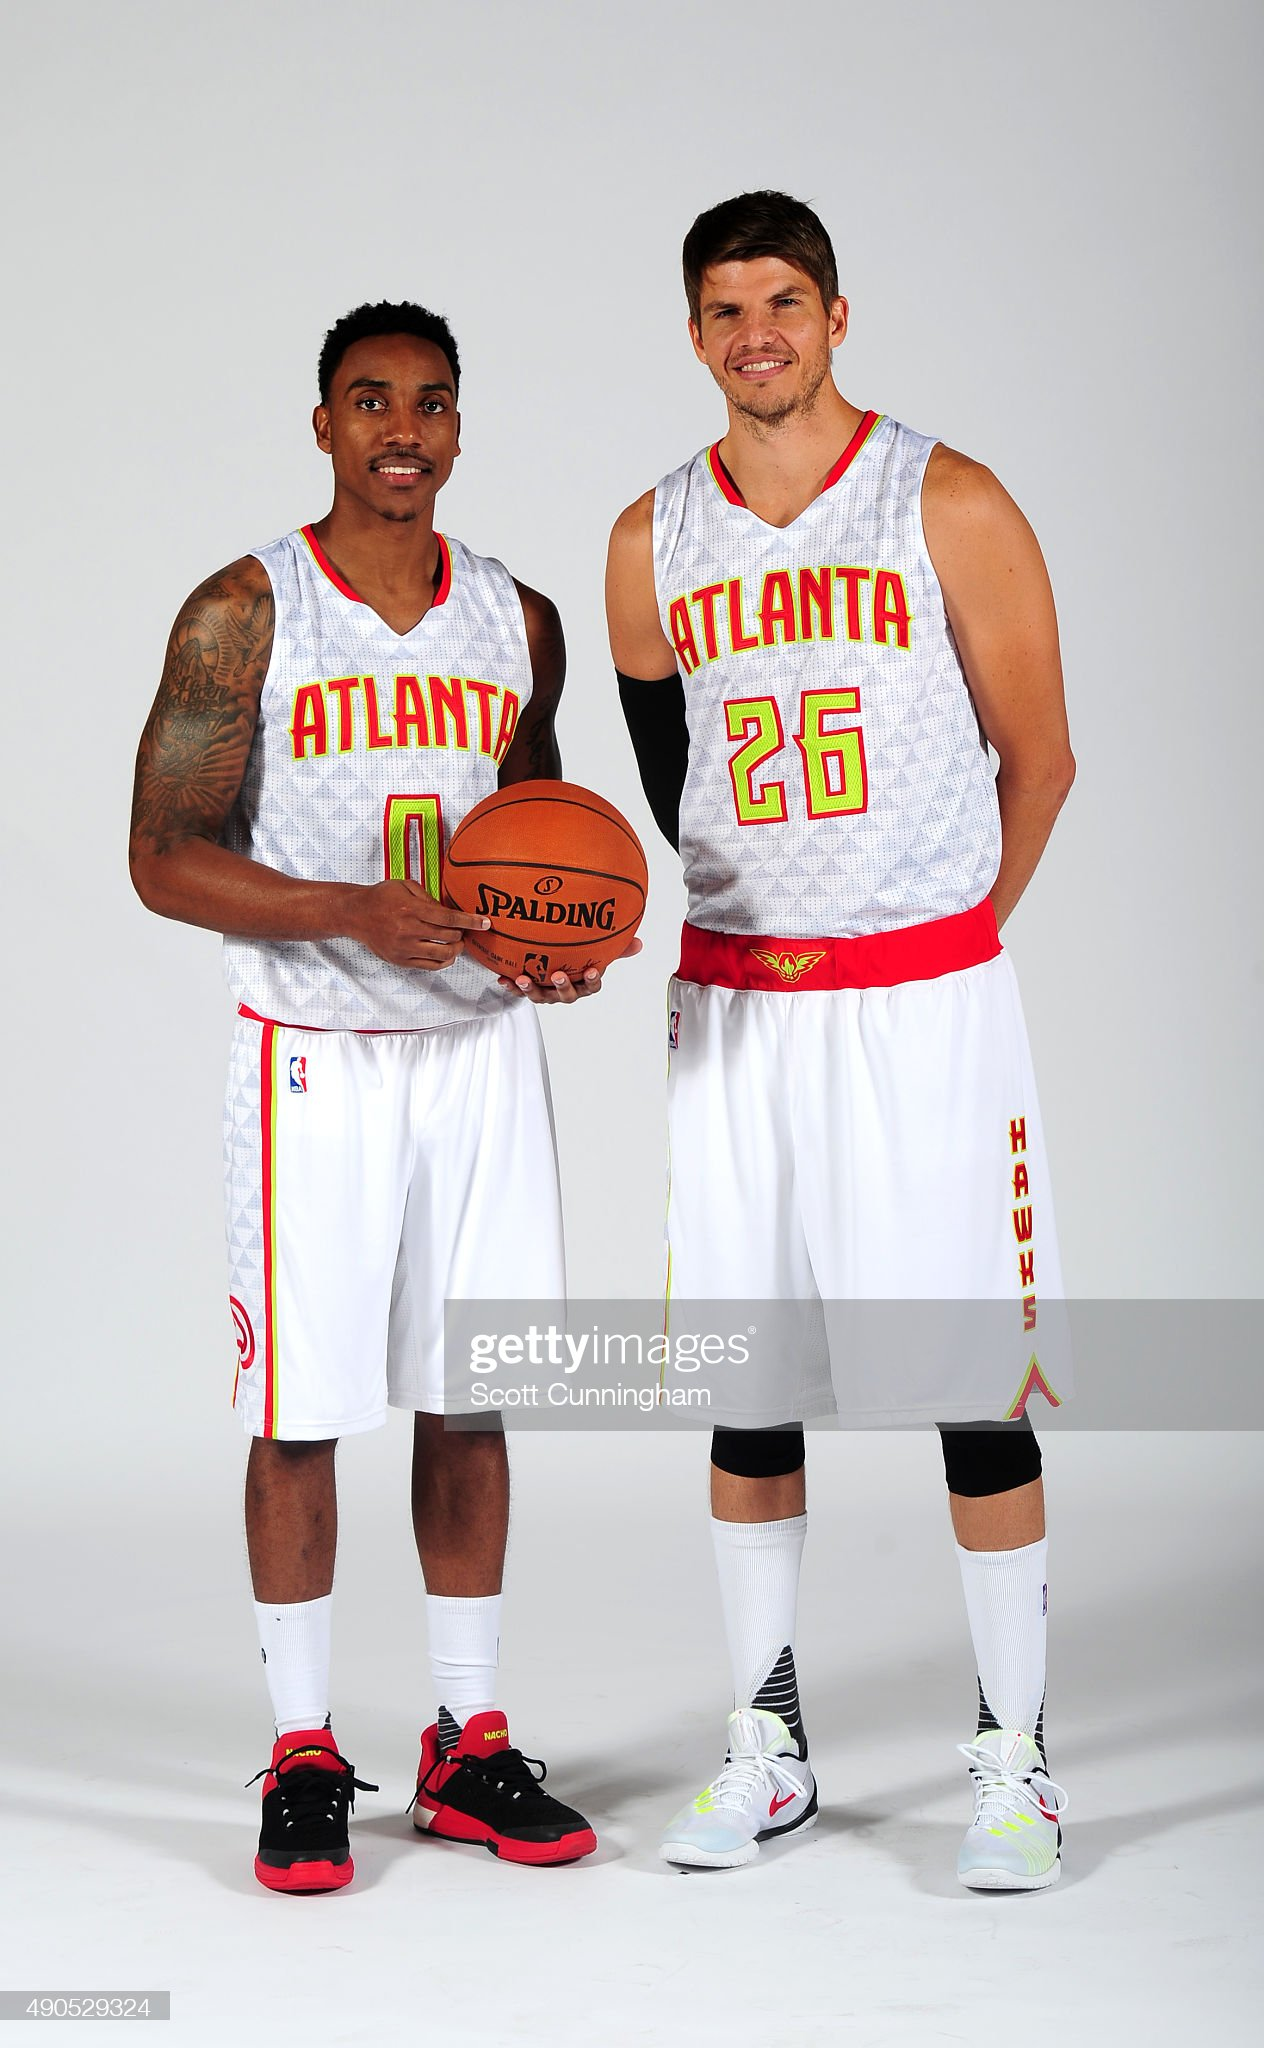 ¿Cuánto mide Paul George? - Real height Jeff-teague-and-kyle-korver-of-the-atlanta-hawks-pose-during-nba-day-picture-id490529324?s=2048x2048